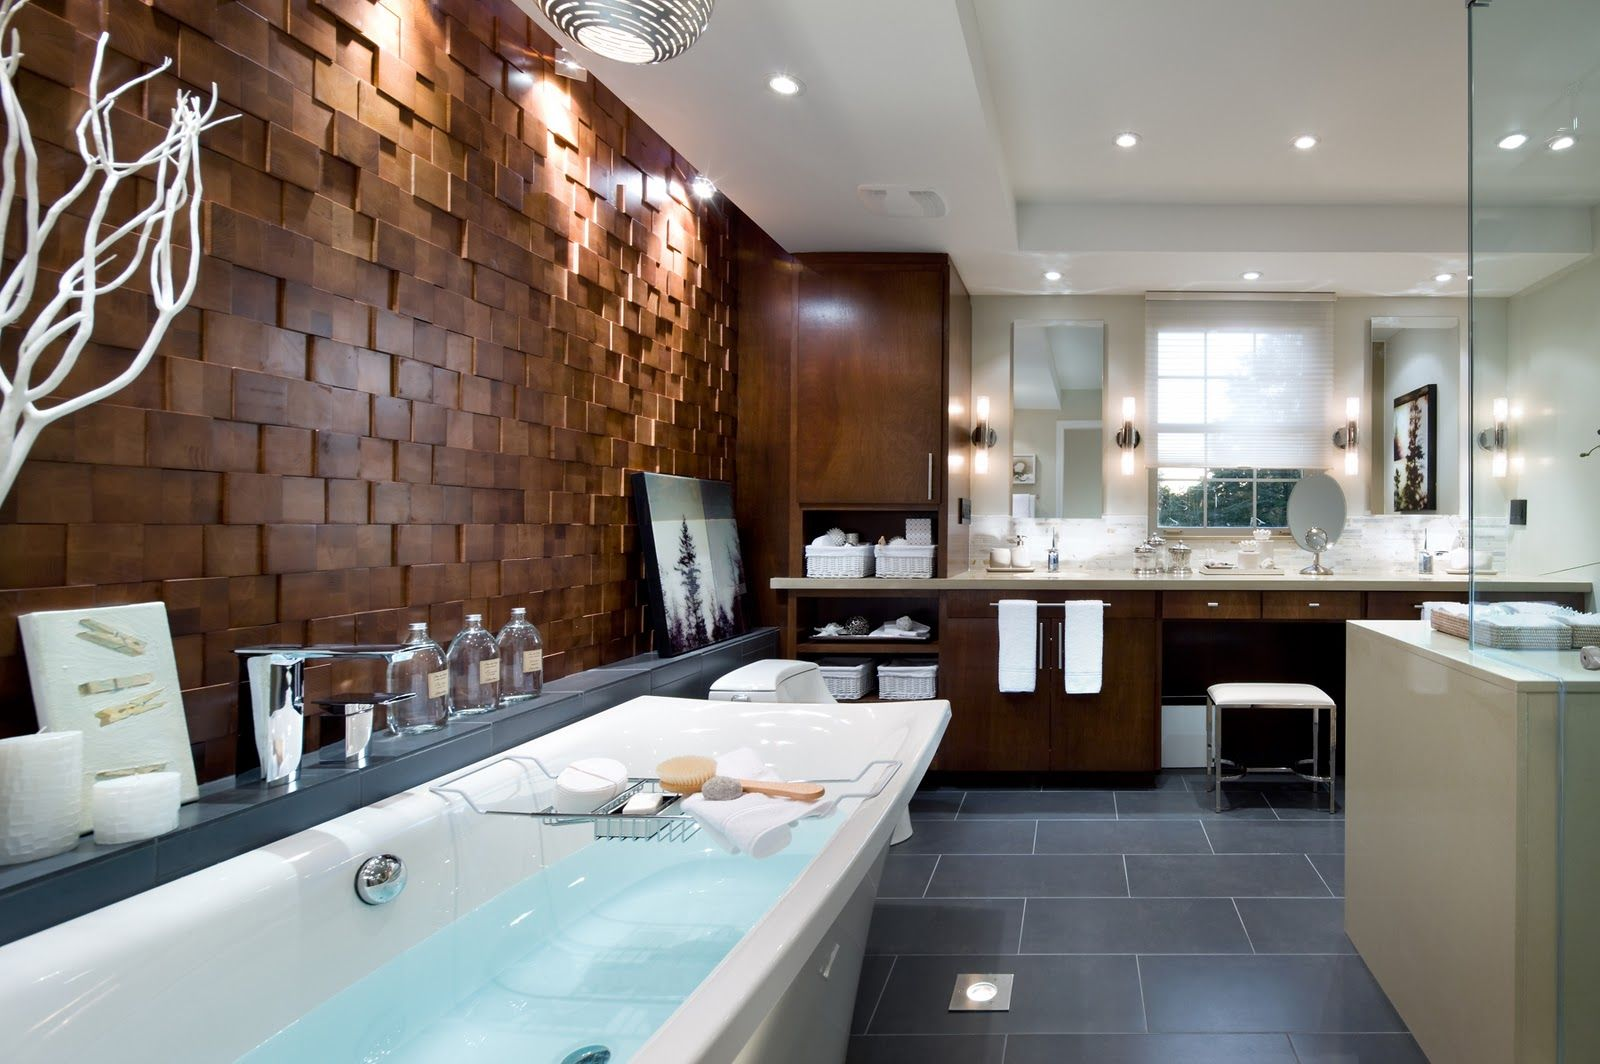 Bathroom By Candice Olson Look At That Amazing Wood Detailing - Candice olson living room gallery designs